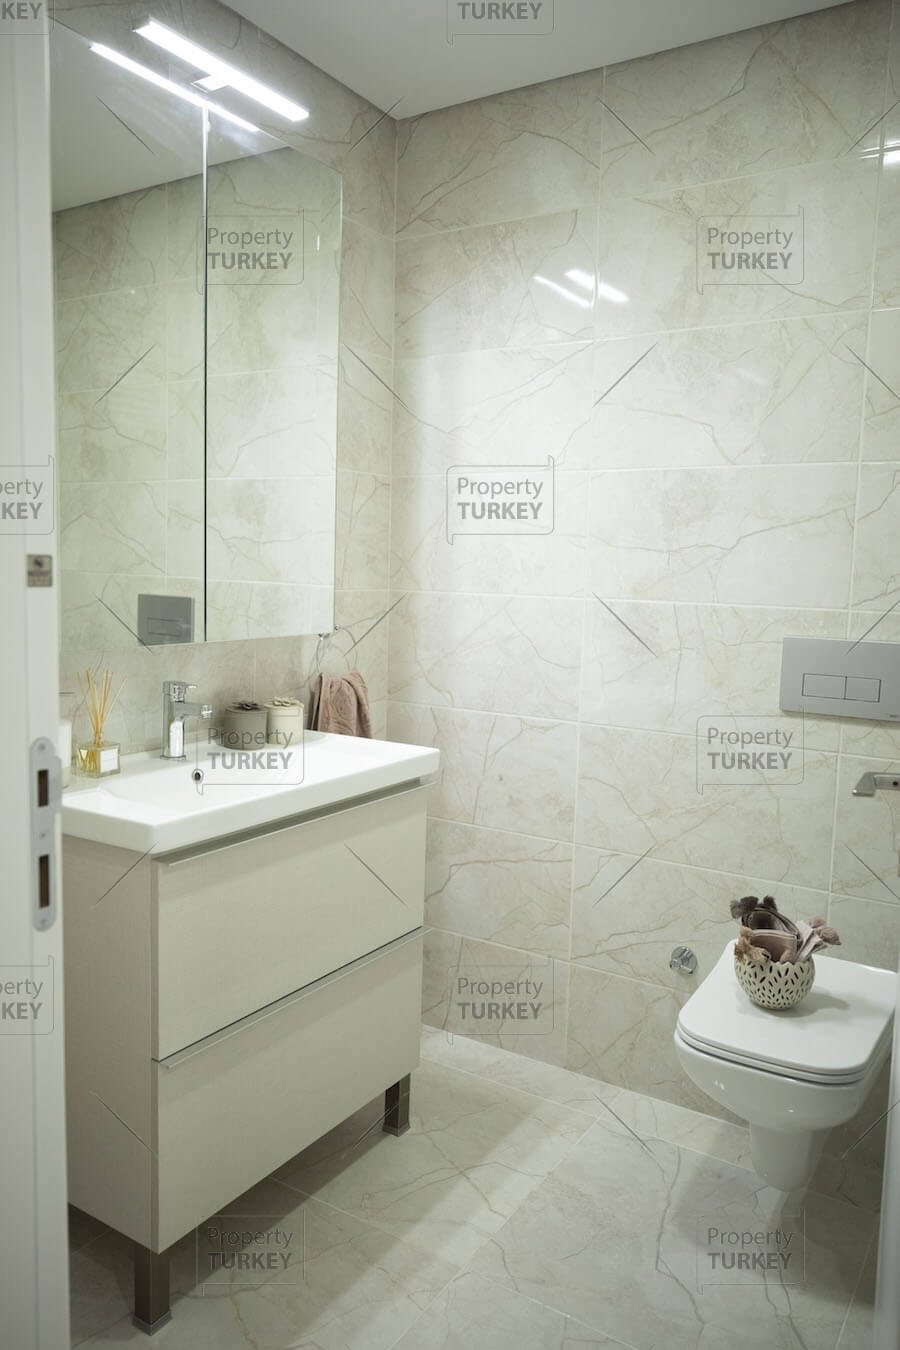 Equipped bathroom